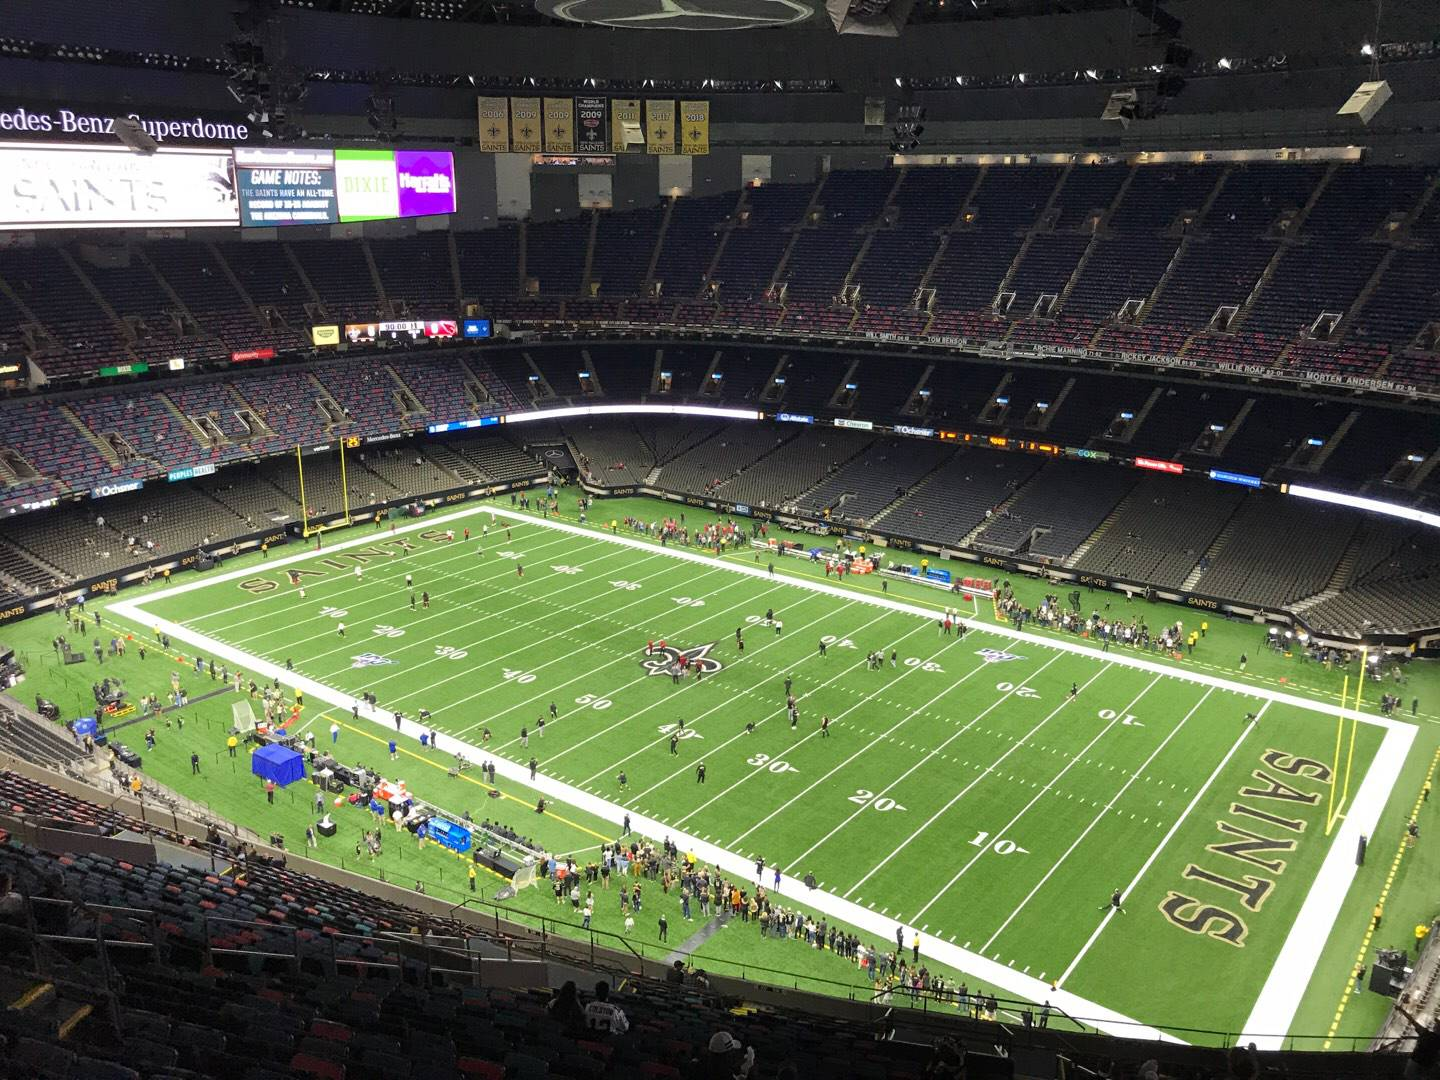 Mercedes-Benz Superdome Section 635 Row 34 Seat 3